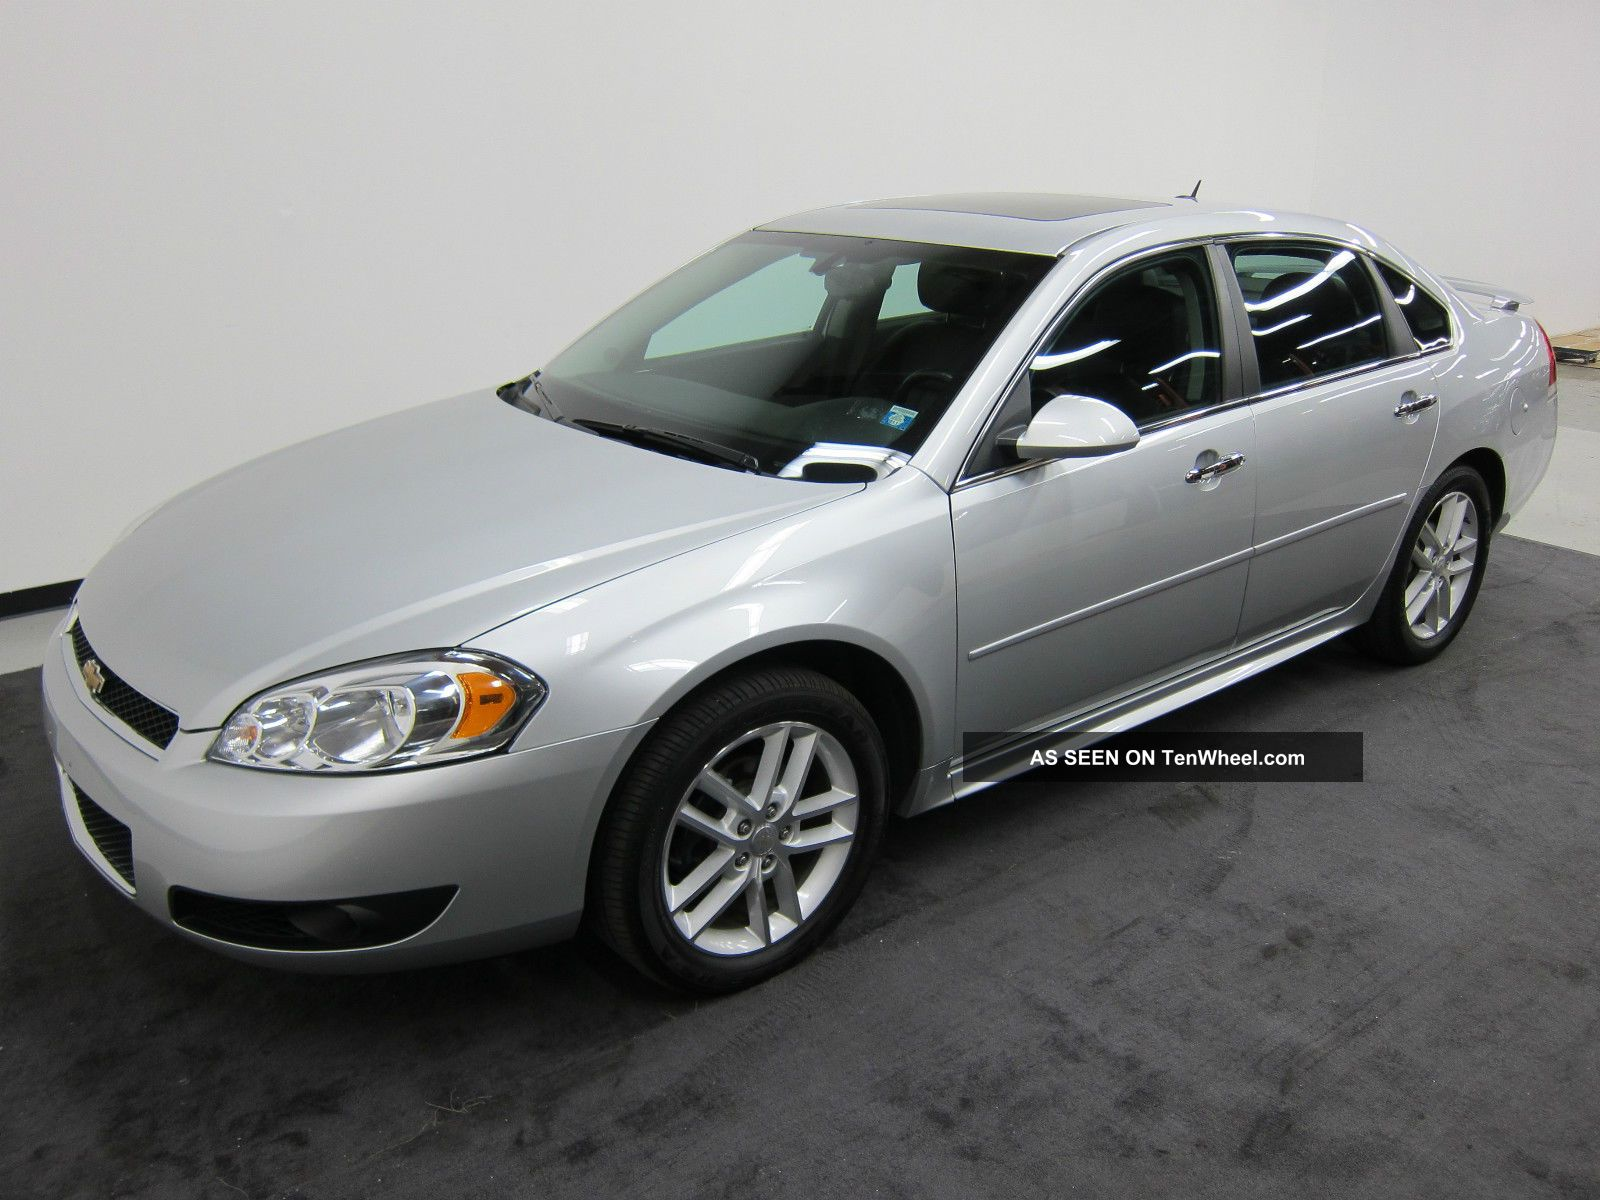 2012 chevrolet impala ltz 4dr sedan specs autos post. Black Bedroom Furniture Sets. Home Design Ideas